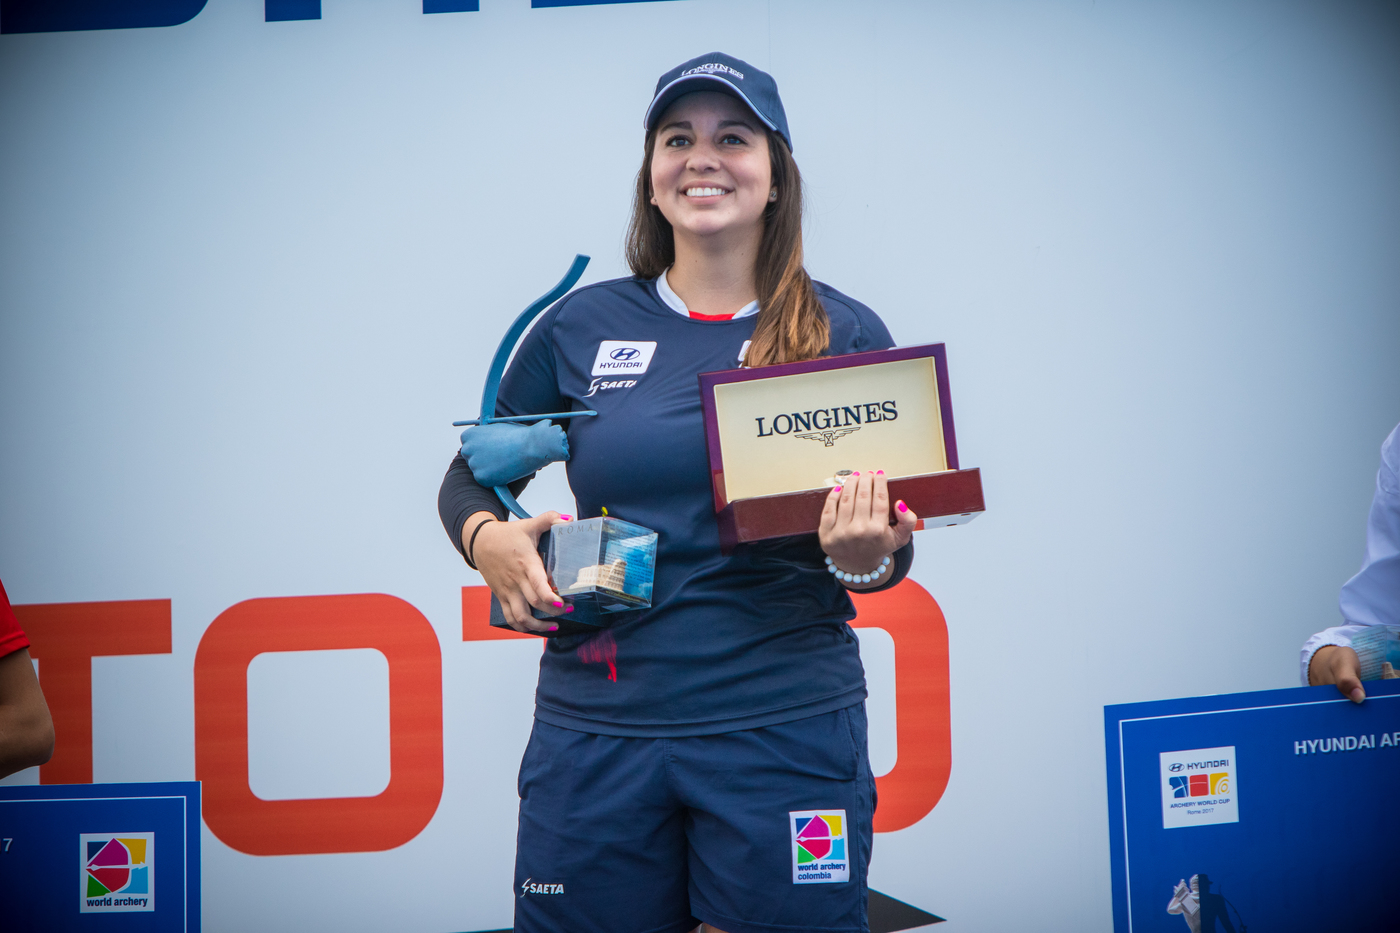 Longines Archery Event: Stephan Hansen and Sarah Sonnichsen claim the Longines Prize for Precision at the Archery World Cup Final in Rome 1